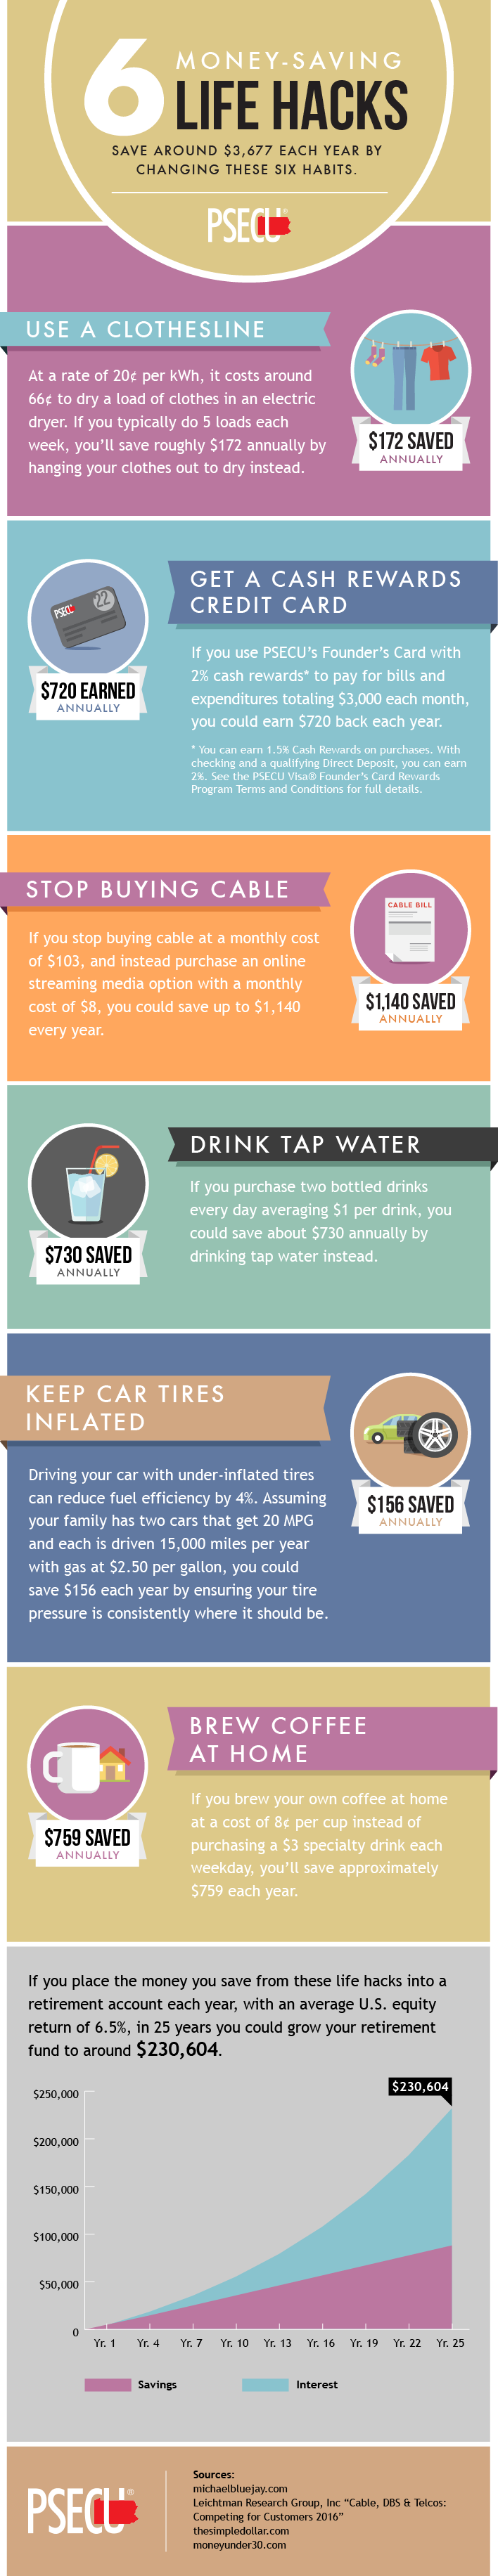 6 Money Saving Life Hacks!  When it comes to your spending habits, small purchases can add up fast.  Developing the right habits can help you live a financially stable life, and if you learn good money habits early on, you can have peace of mind for the future.  This pin has been sponsored by PSECU.